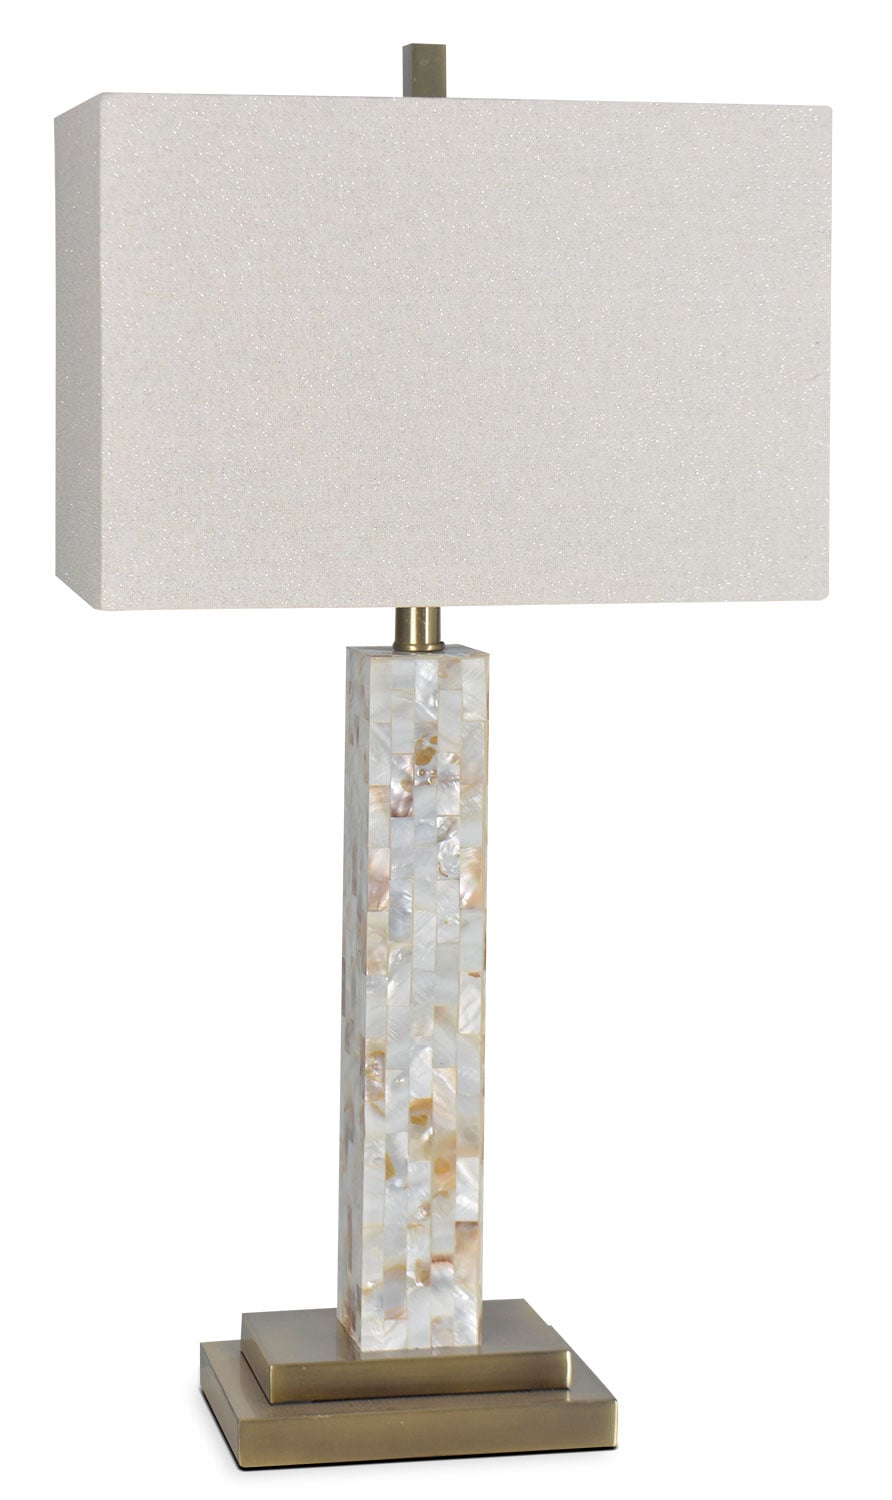 and occasional furniture mother of pearl 27 table lamp beige. Black Bedroom Furniture Sets. Home Design Ideas